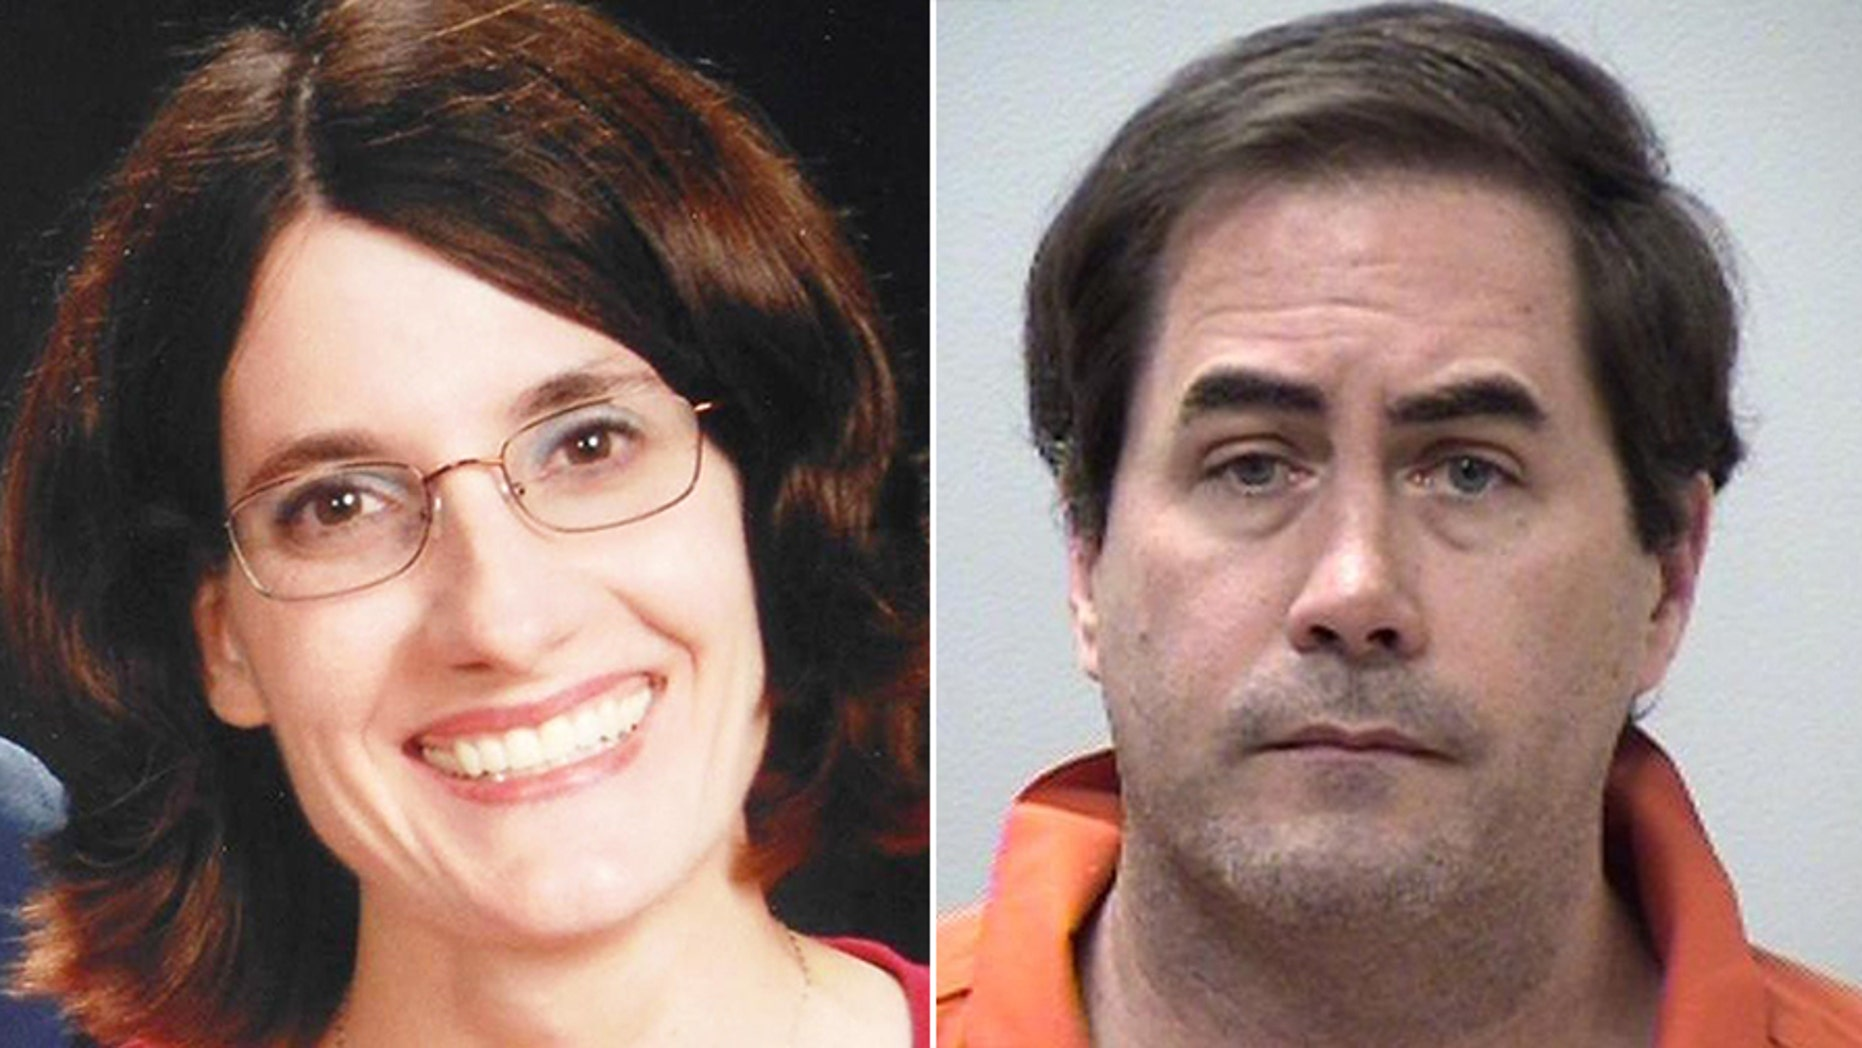 Theresa Lockhart, left, has not been seen since May 18. Police said her husband Christopher was the only person of interest in her disappearance